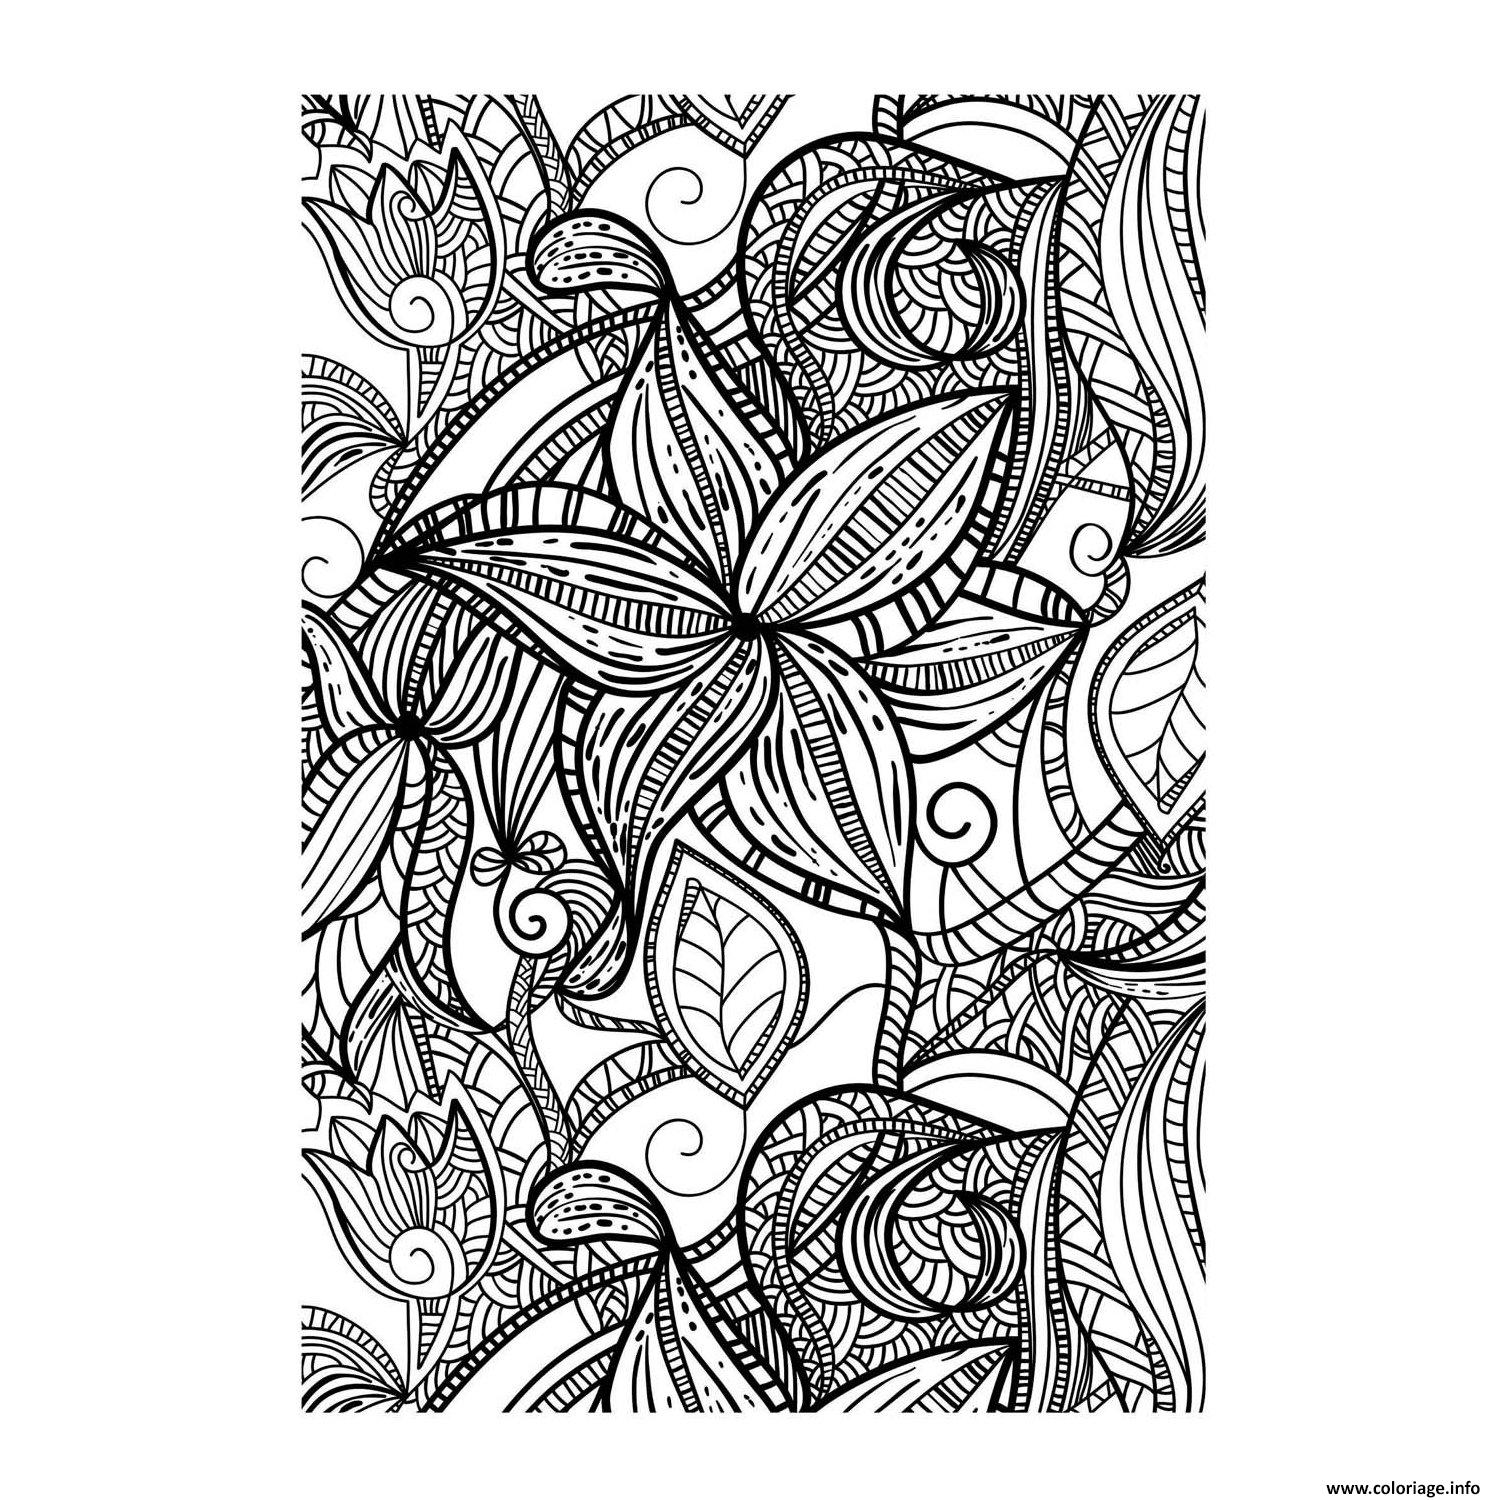 Coloriage art therapie 58 - Coloriage therapie ...